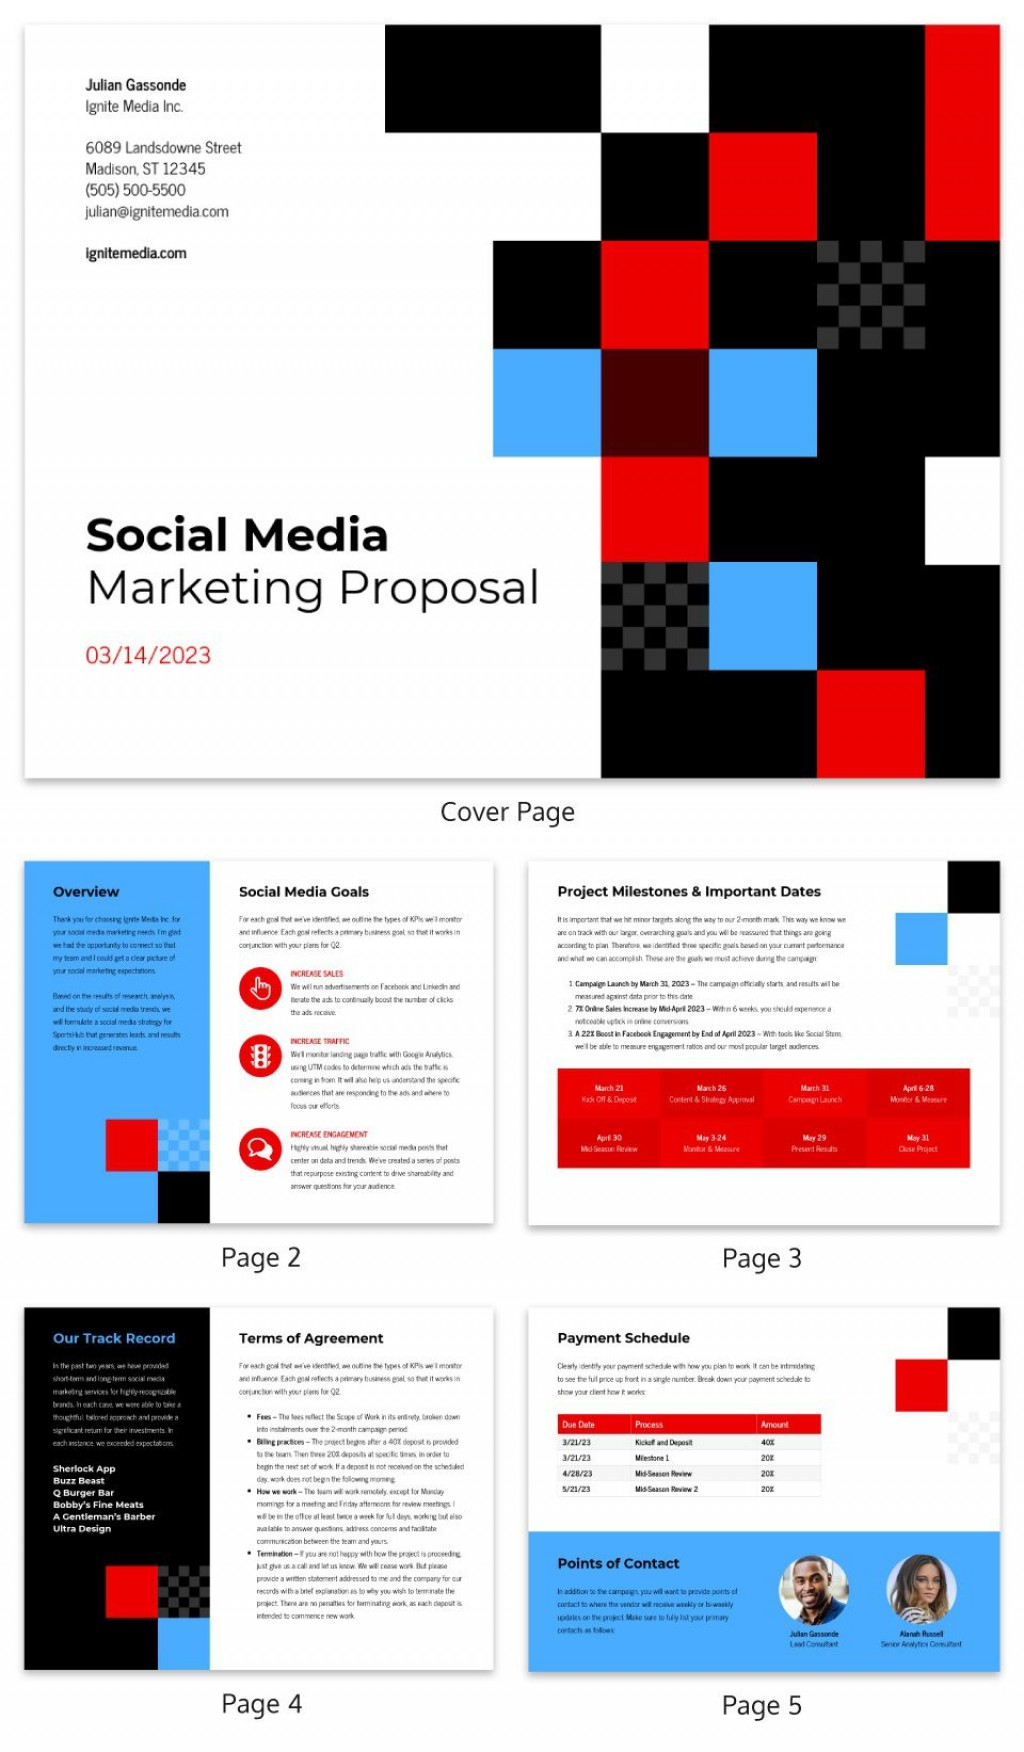 007 Incredible Social Media Proposal Template Example  Plan Sample Pdf 2018Large